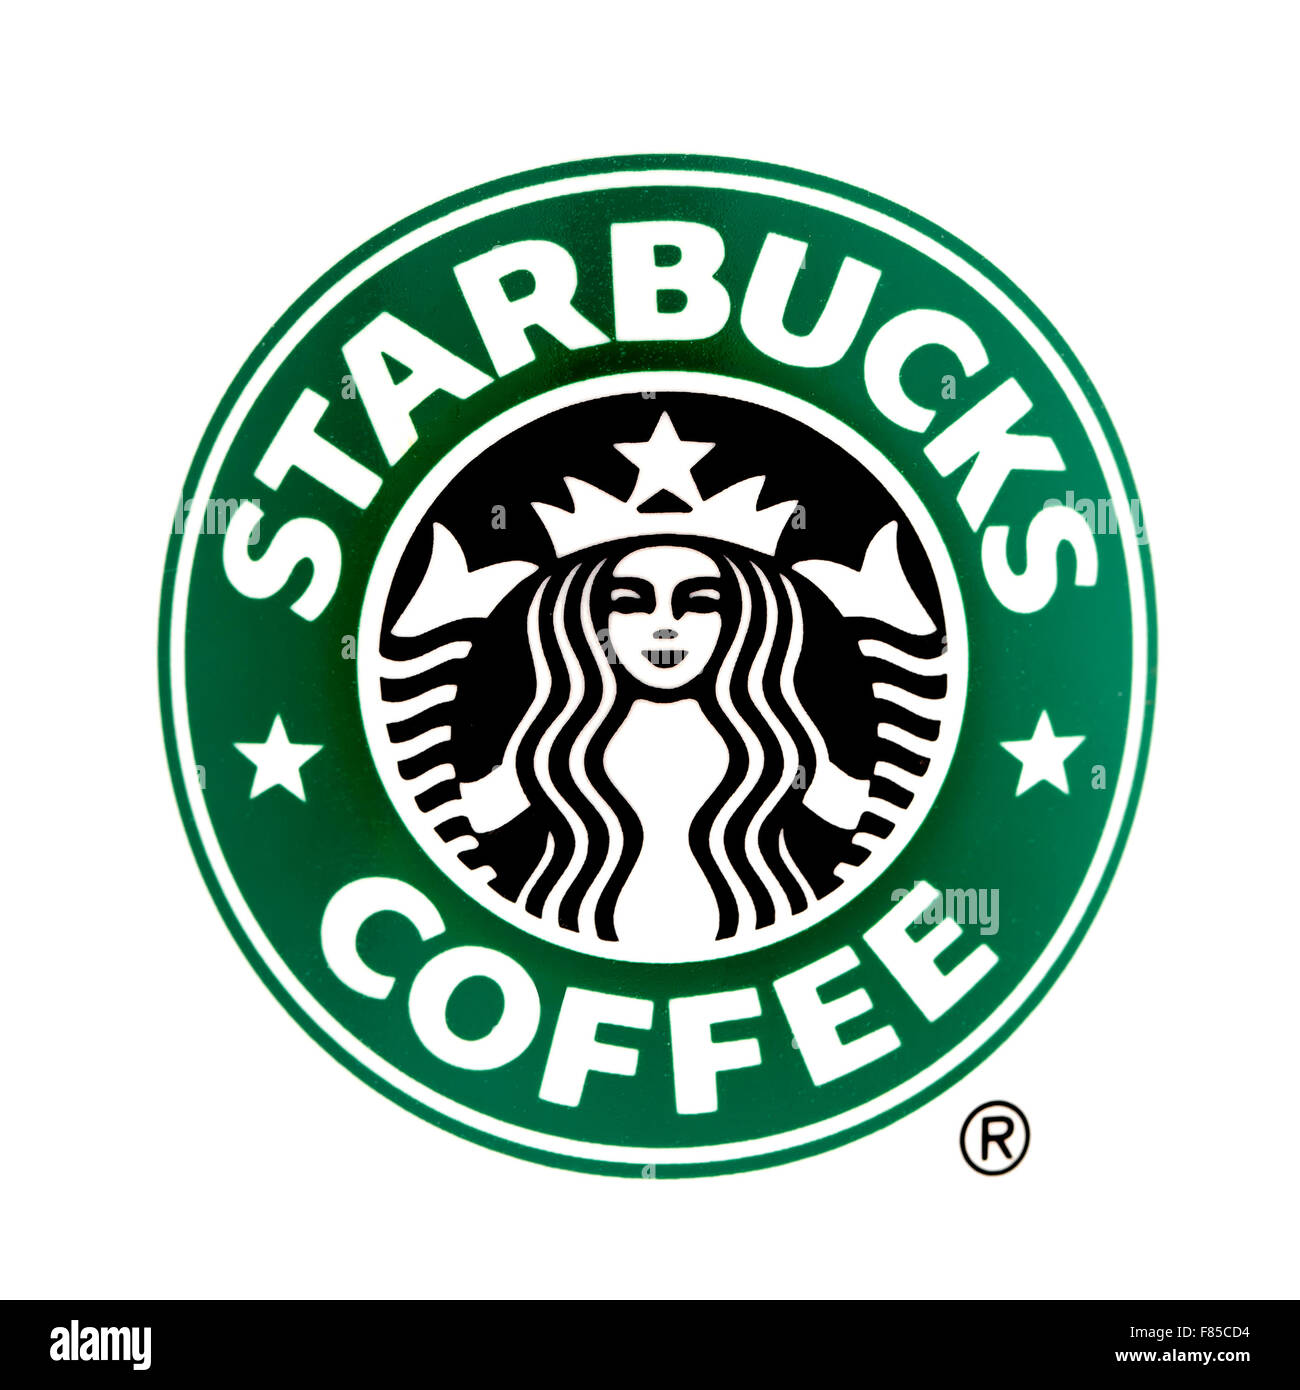 Starbucks logo on a white background starbucks is the largest starbucks logo on a white background starbucks is the largest coffeehouse company in the world biocorpaavc Image collections